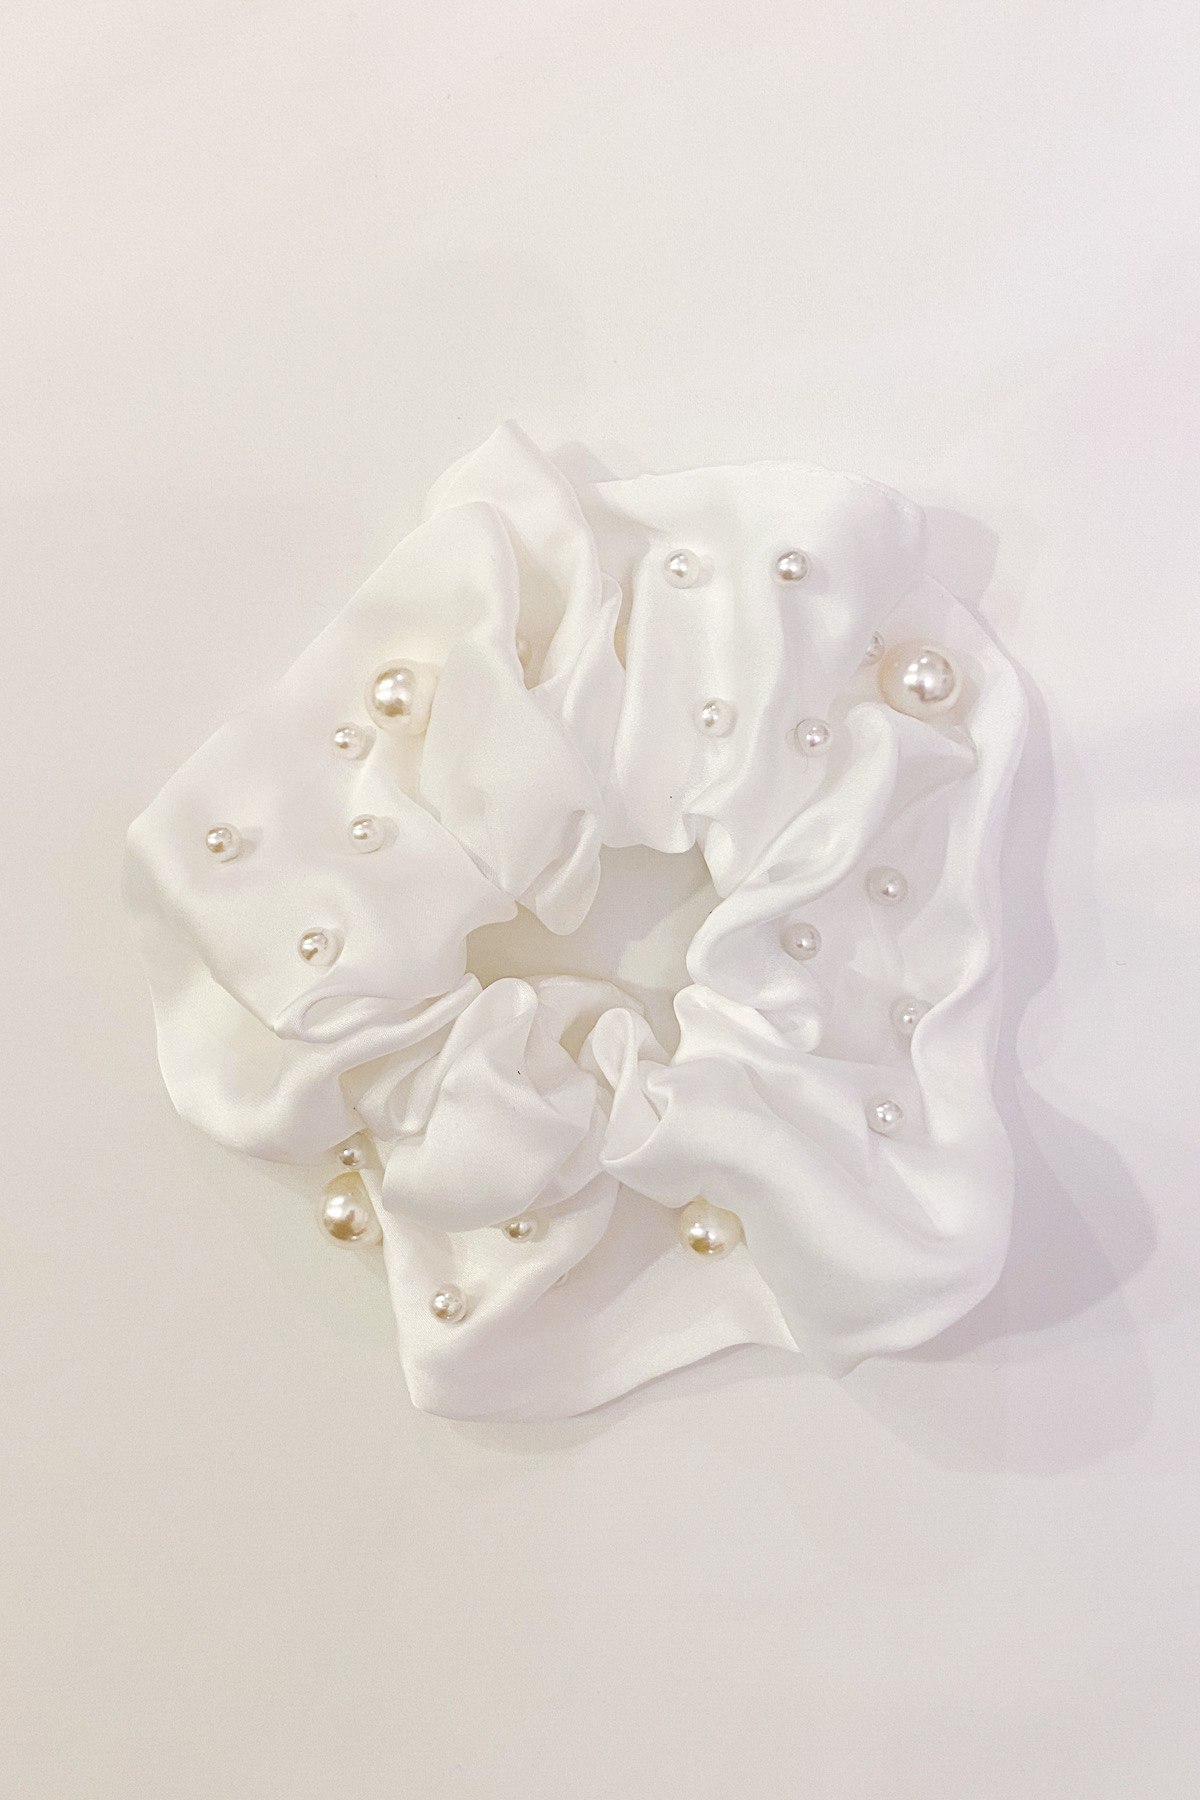 SKYE San Francisco Shop SF Chic Modern Elegant Classy Women Jewelry French Parisian Minimalist Isabella Pearl satin Scrunchie 3